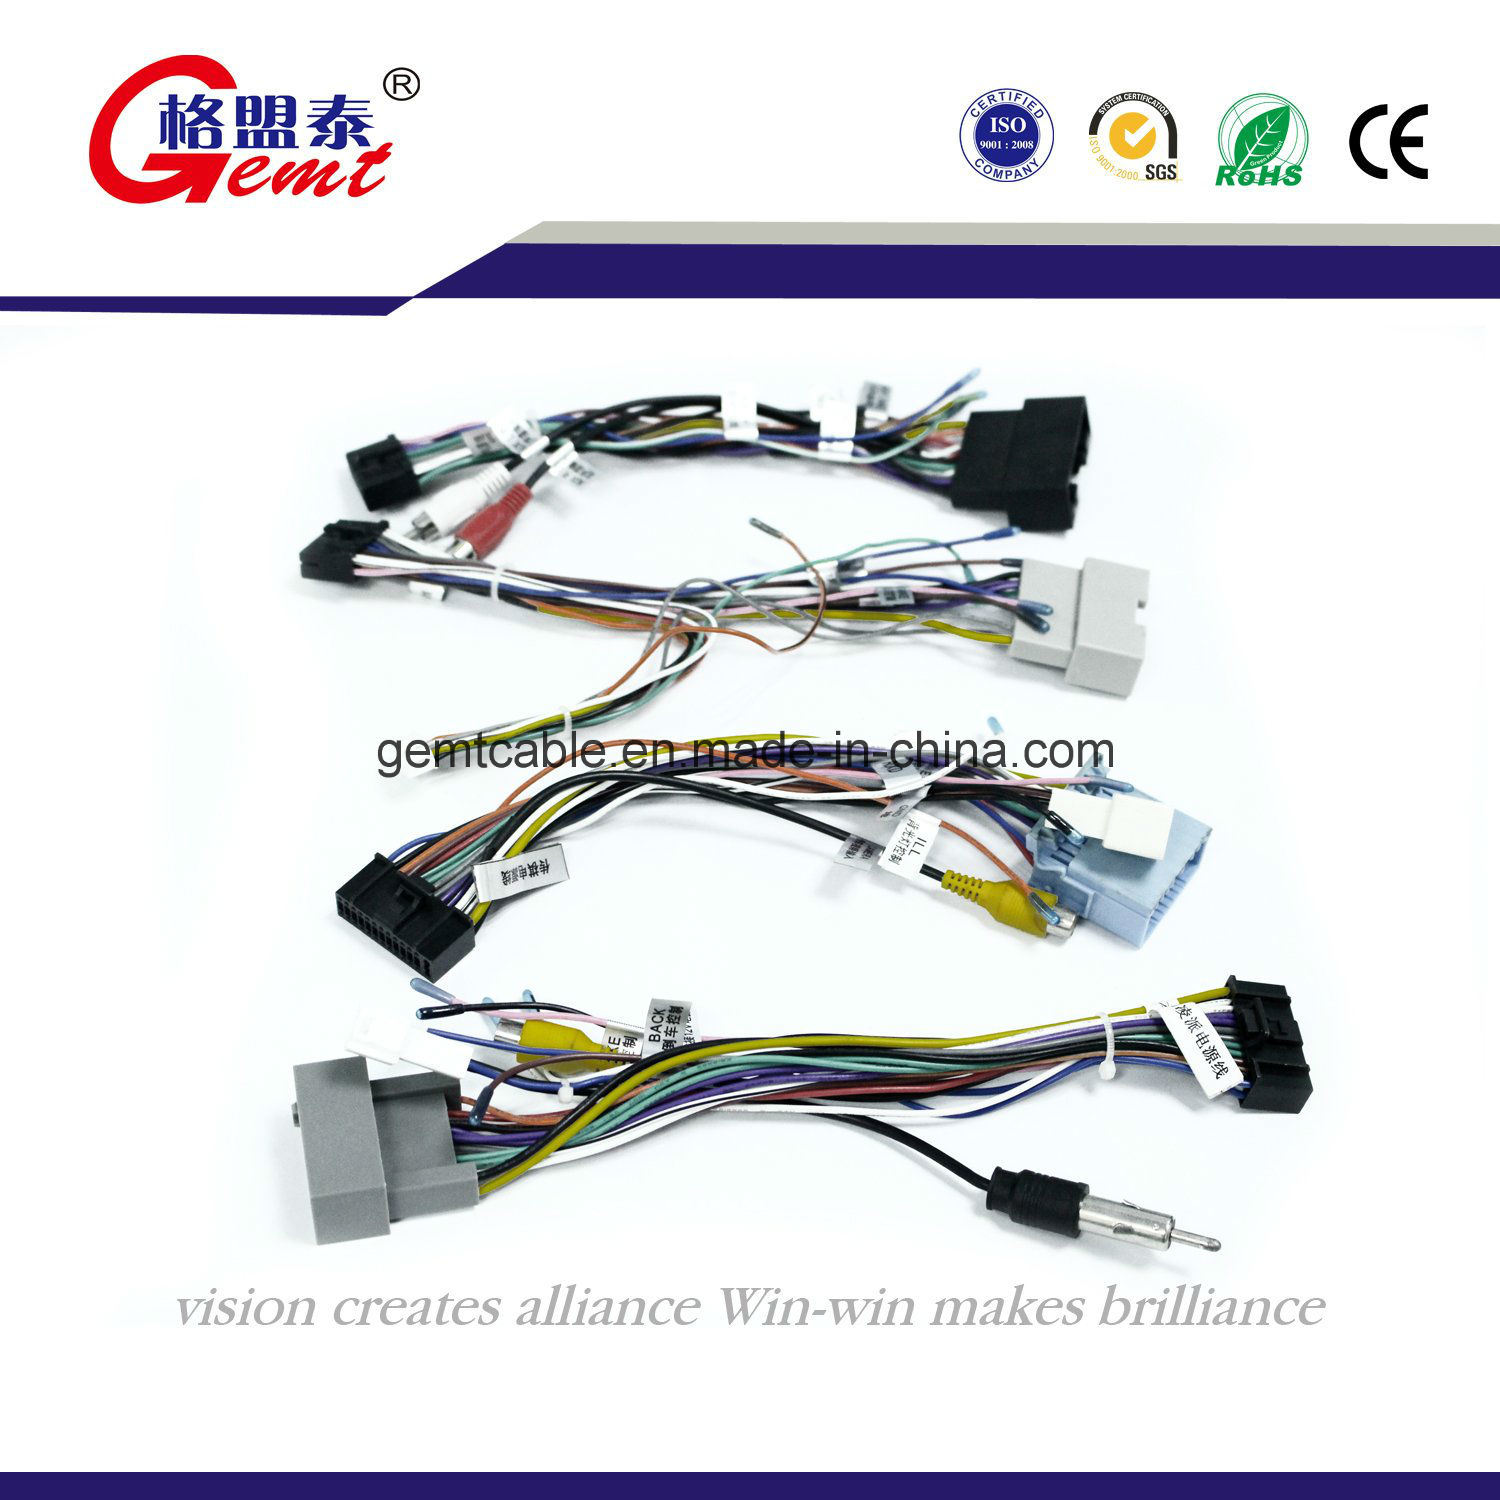 China Wiring Harness Manufacturer Produces Custom Cable Assembly - China Wire  Harness, Wiring Harness